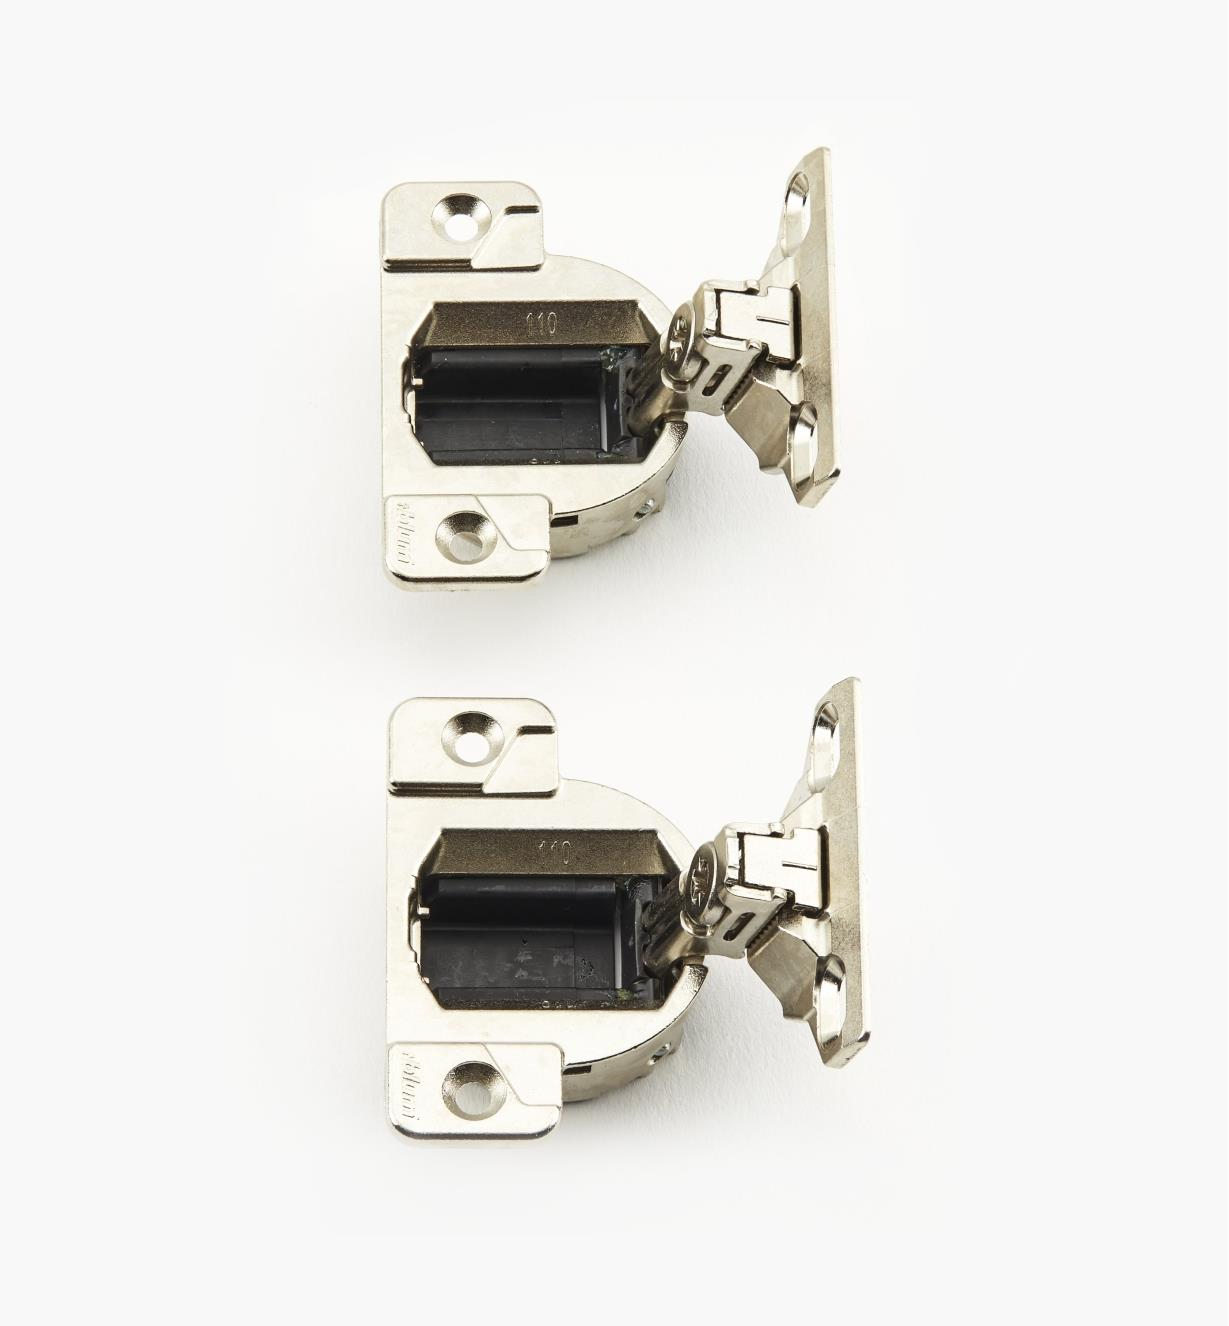 00B0704 - 110° Face-Mount Face-Frame Hinges, pr.